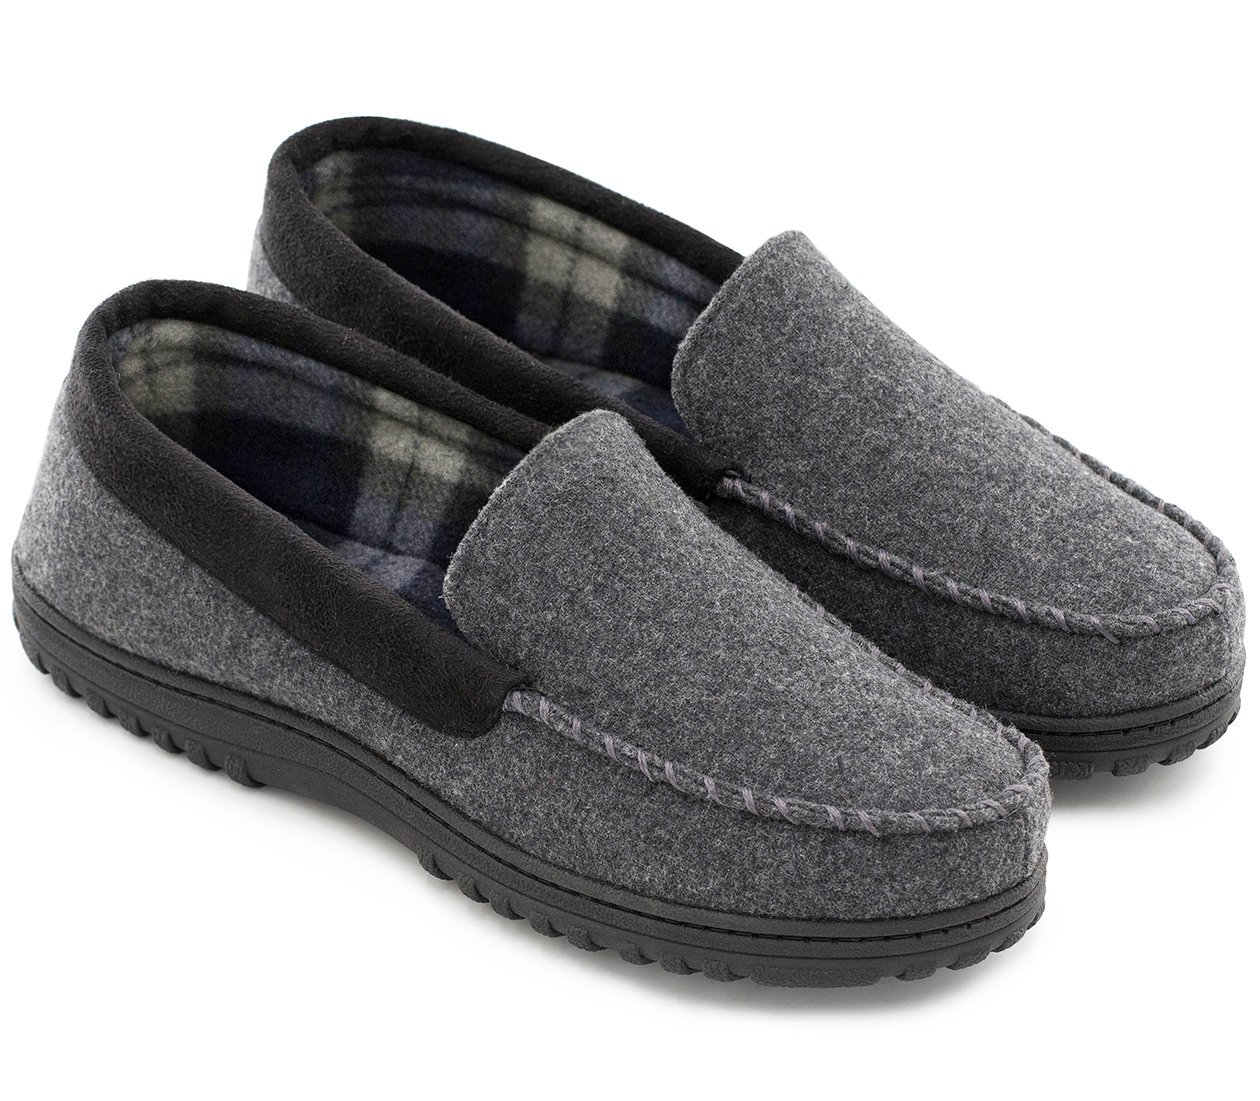 HomeTop Men's Wool And Microsuede Moccasin Slippers